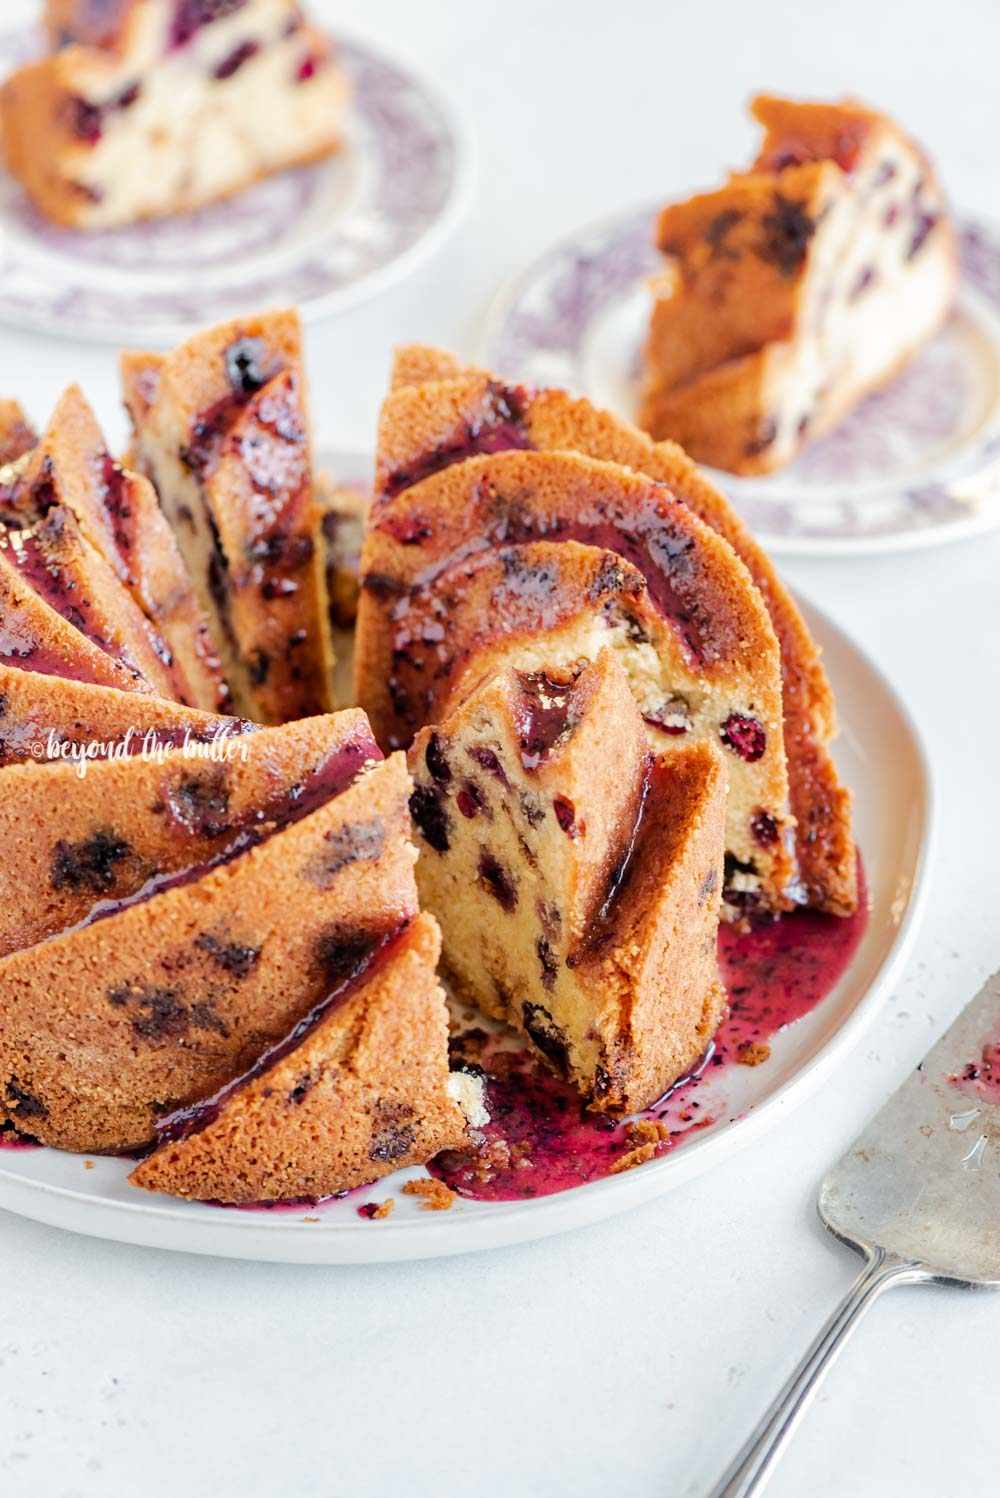 Angled image of sliced blueberry bundt cake with blueberry glaze drizzled over the top | All Images © Beyond the Butter, LLC